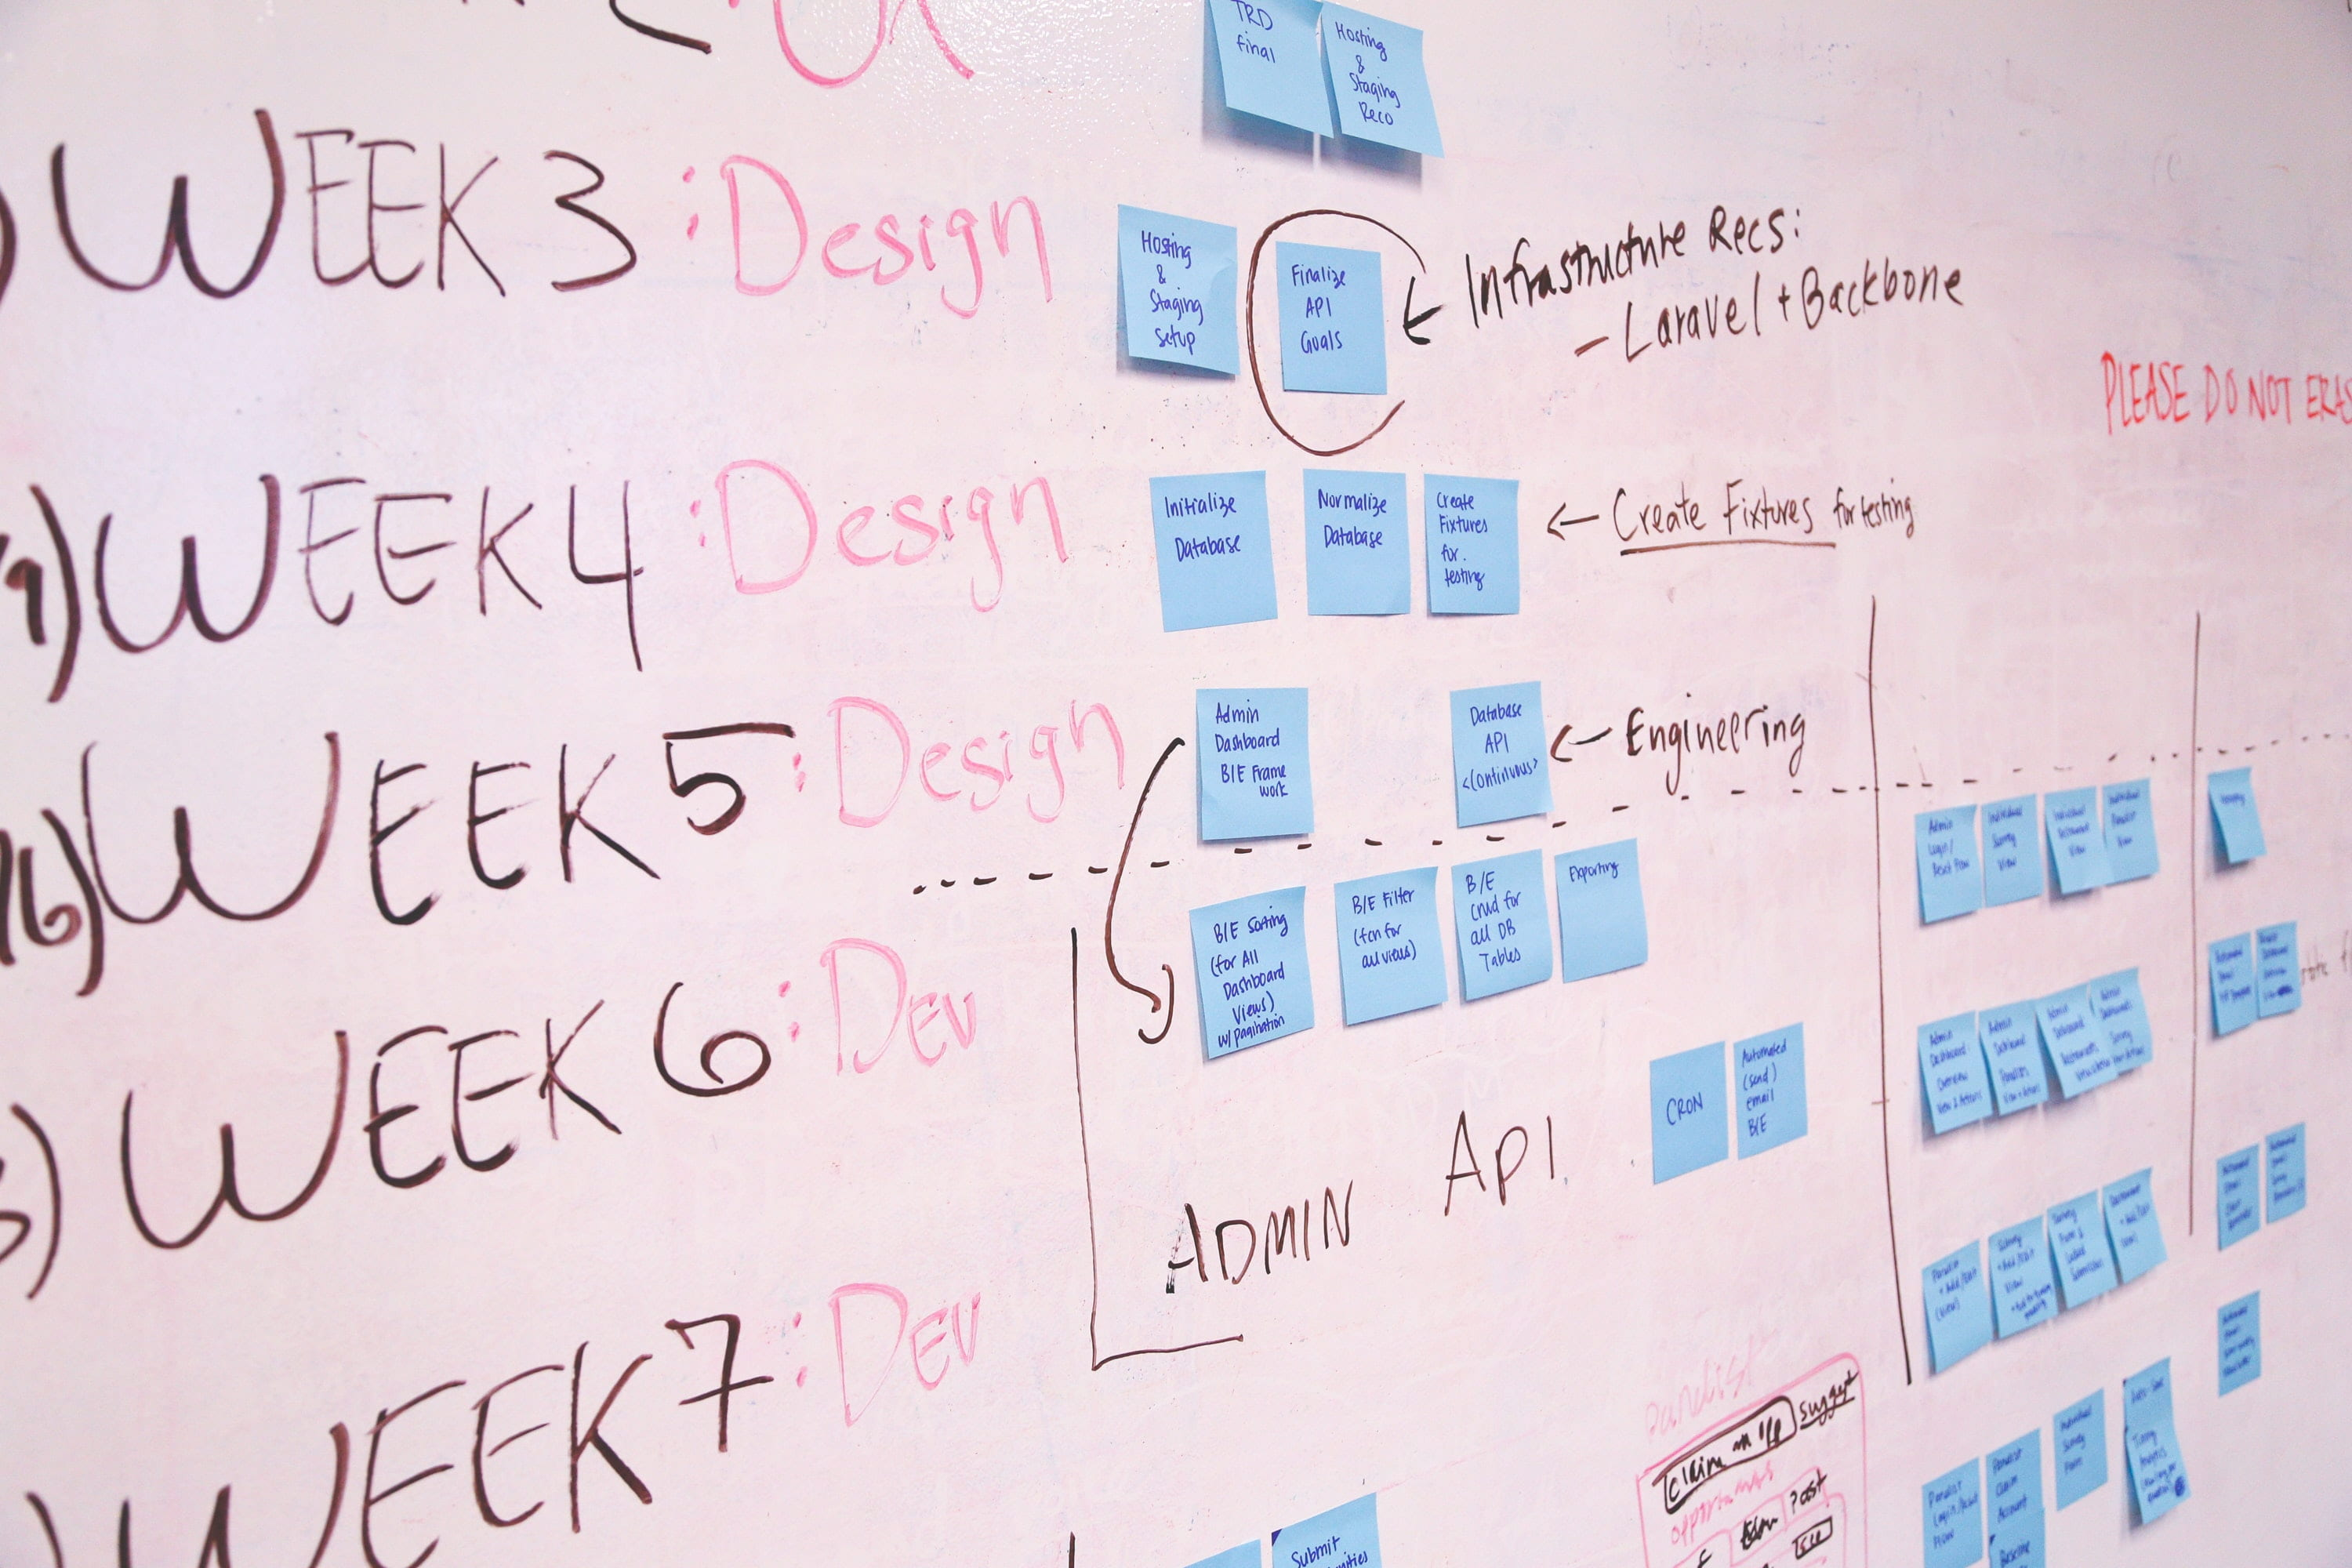 A whiteboard with a weekly planner written on it. There are many post-it notes laid out for each week.